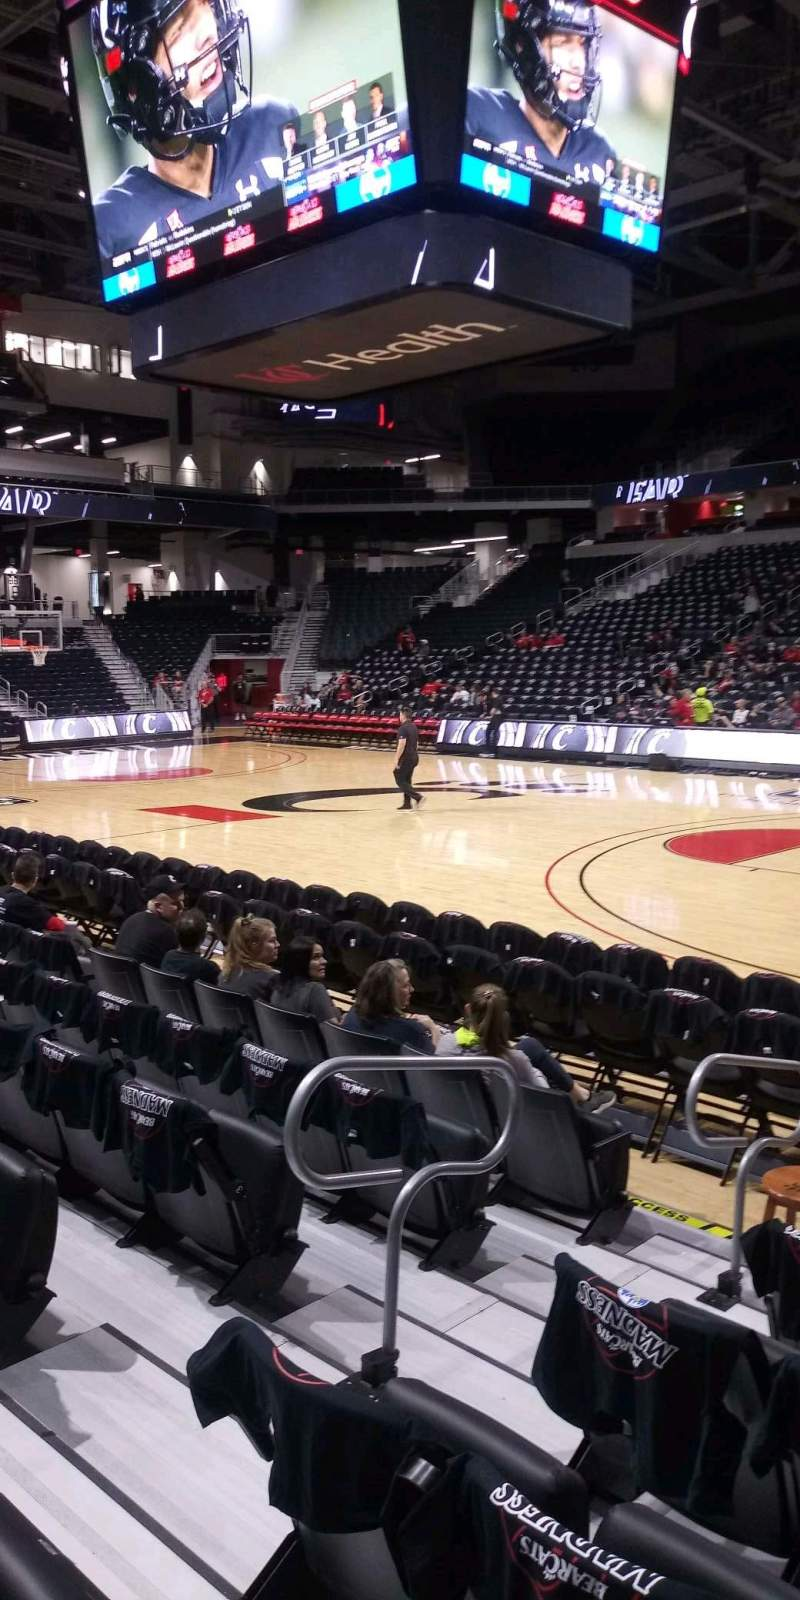 Seating view for Fifth Third Arena Section 102 Row 6 Seat 7